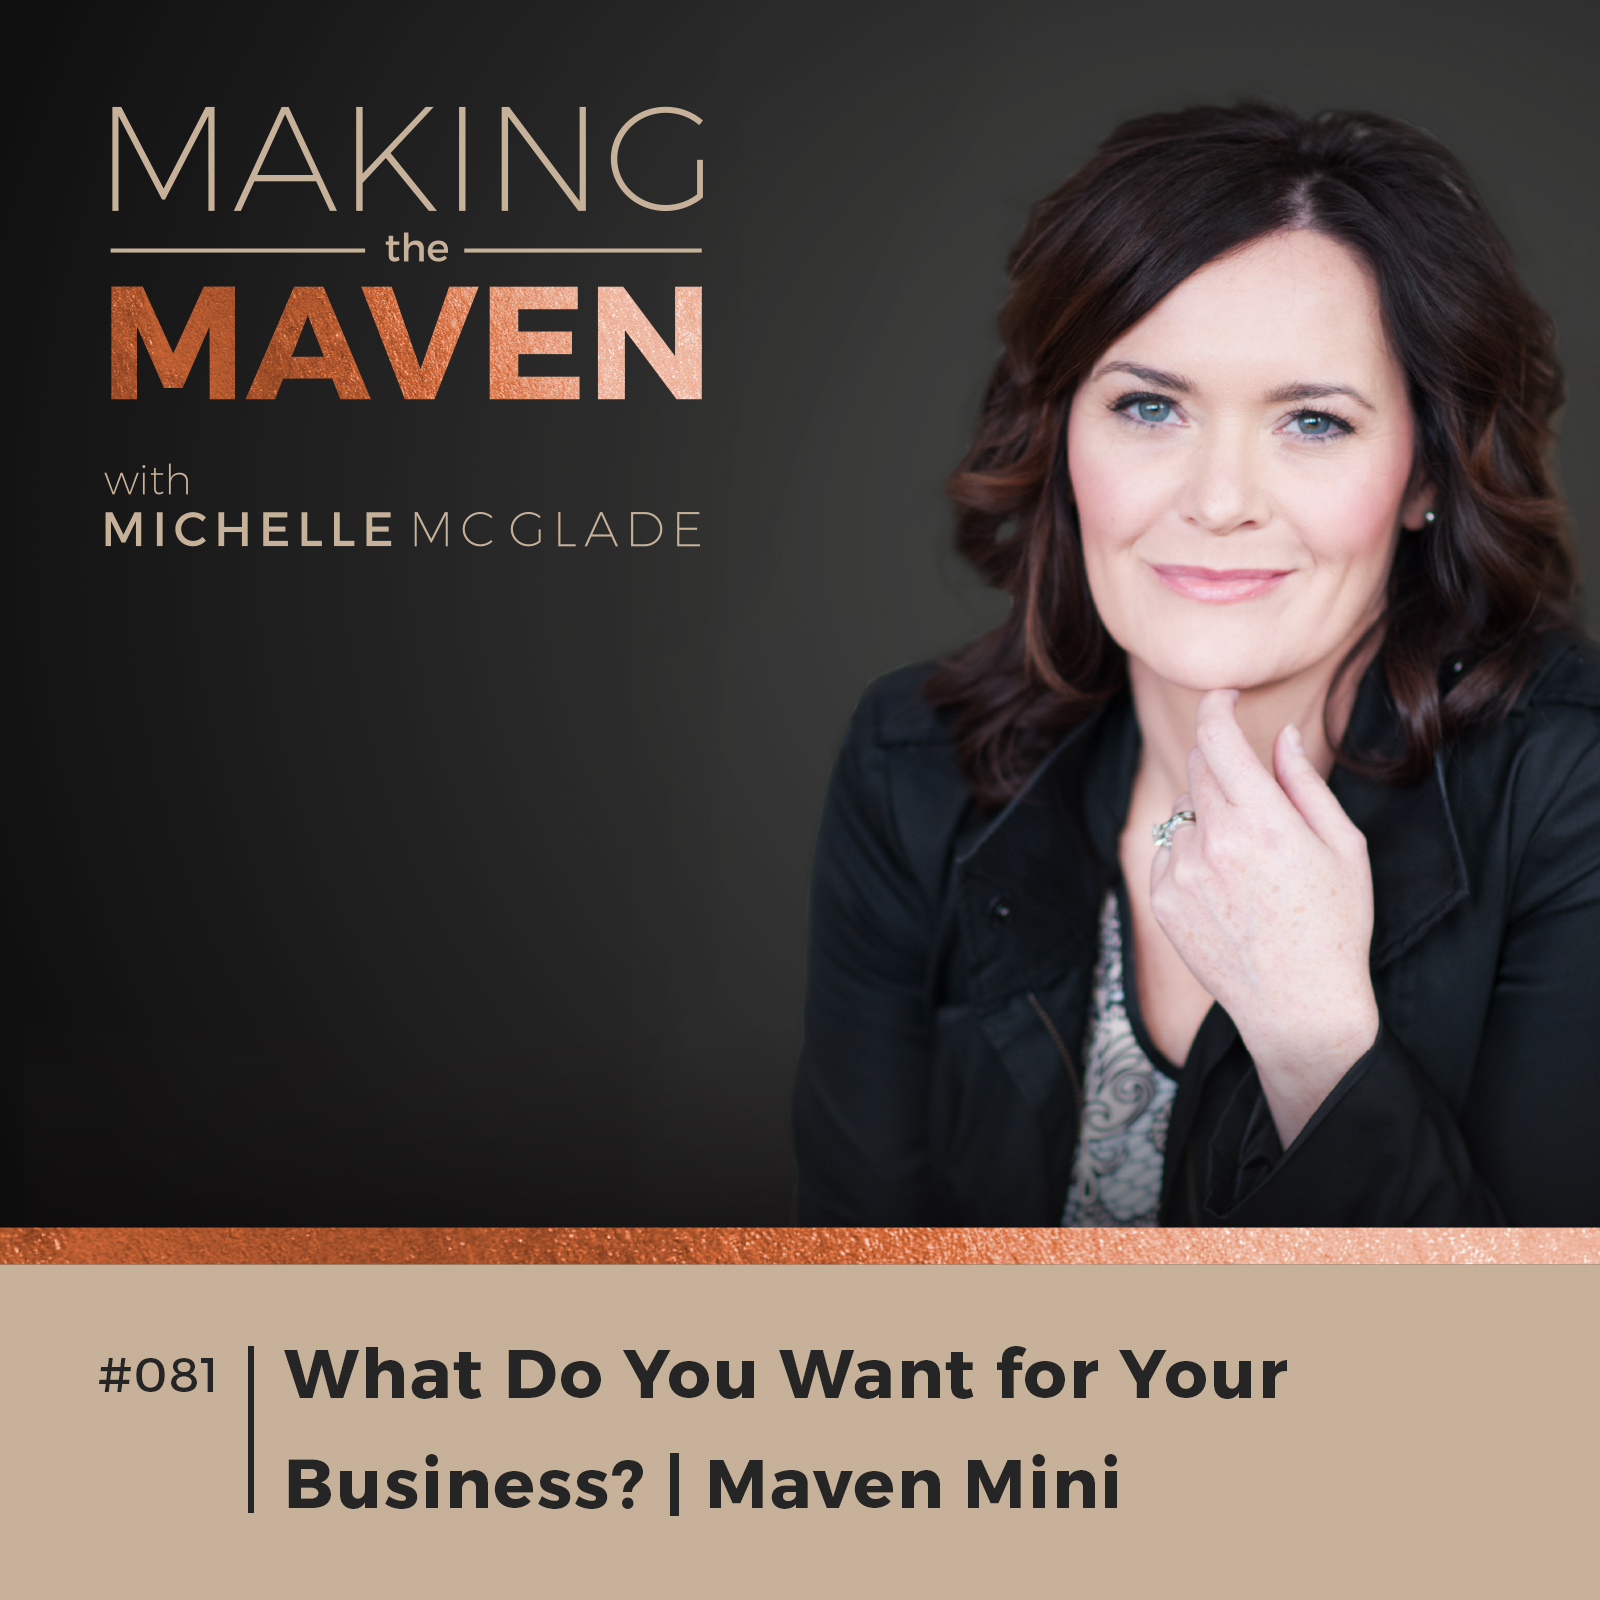 What Do You Want for Your Business?